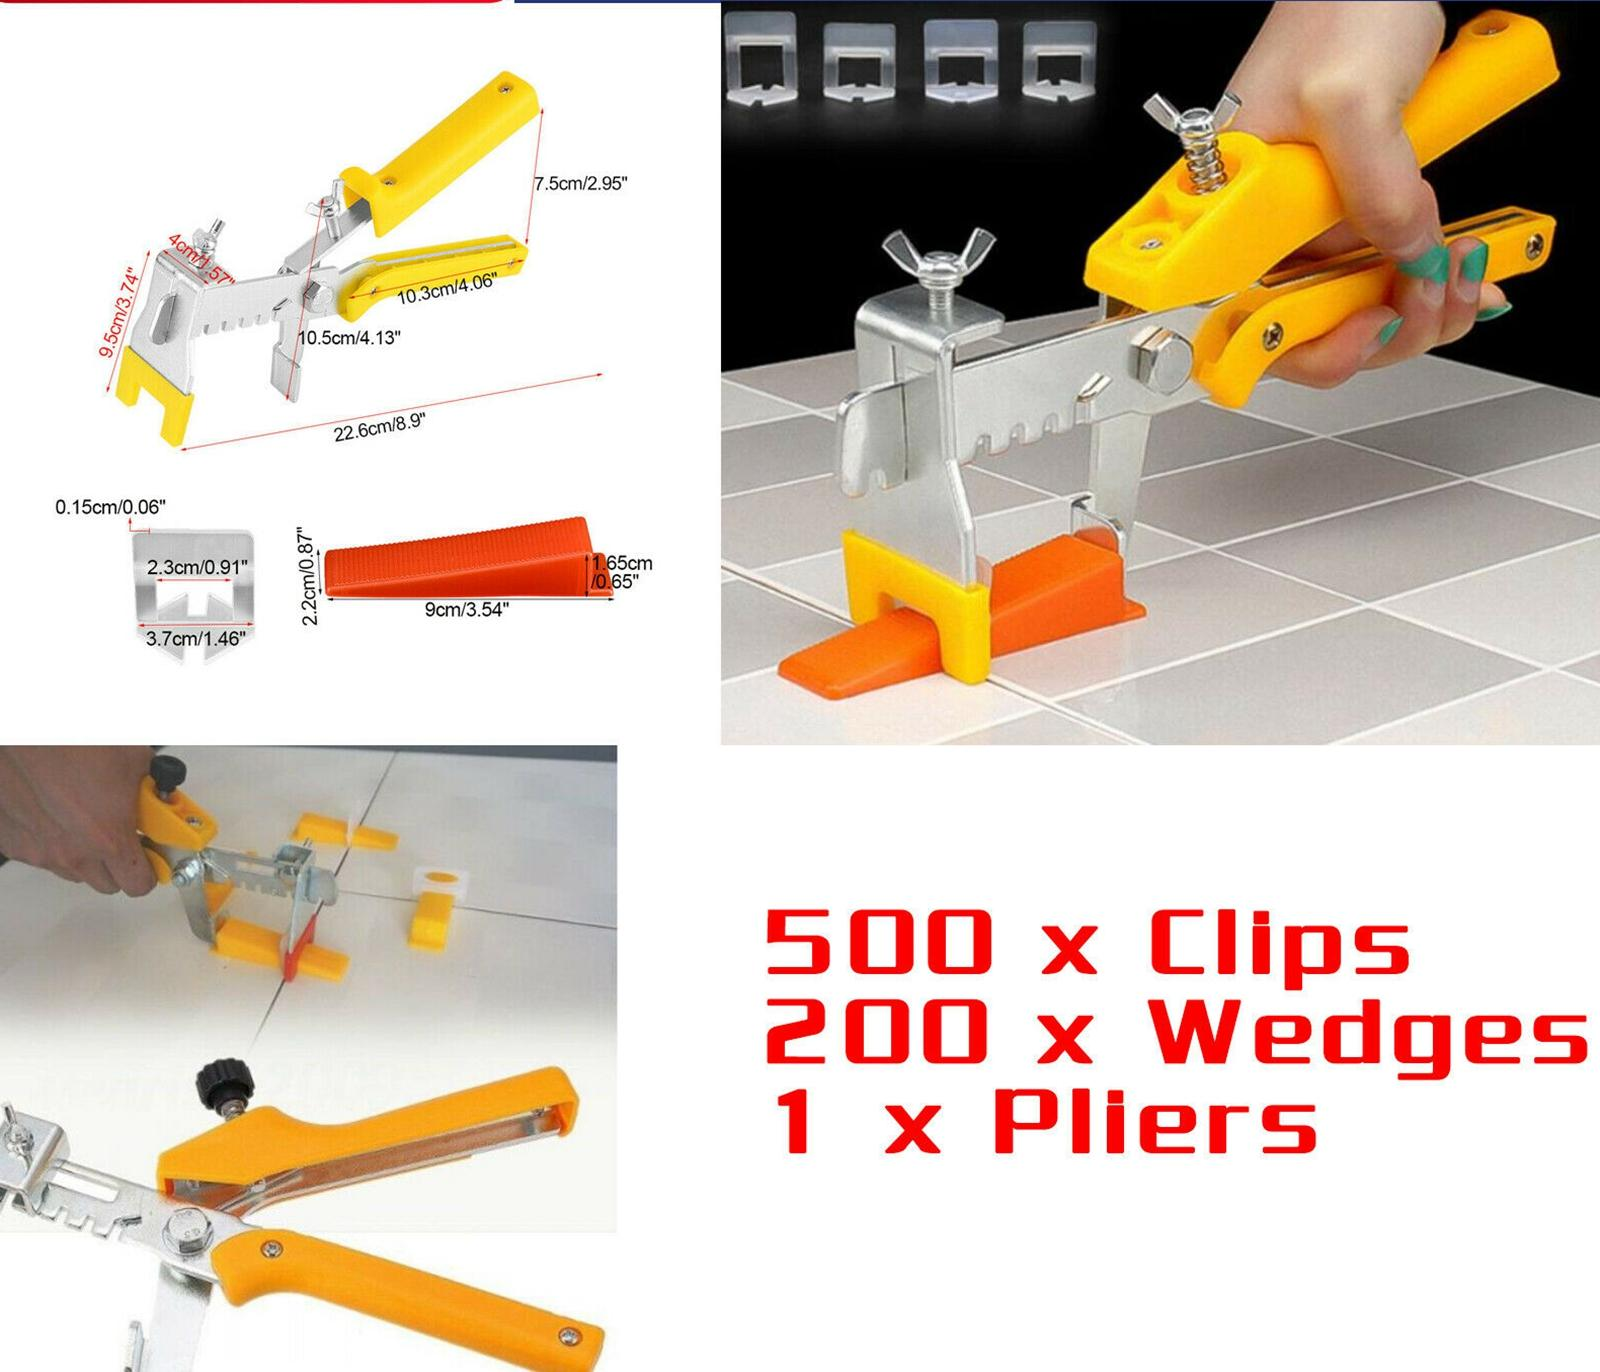 701pc Clip Tile sistema di livellamento del Kit Pareti 1,5 millimetri Tile Spacer rivestimenti Tool Set